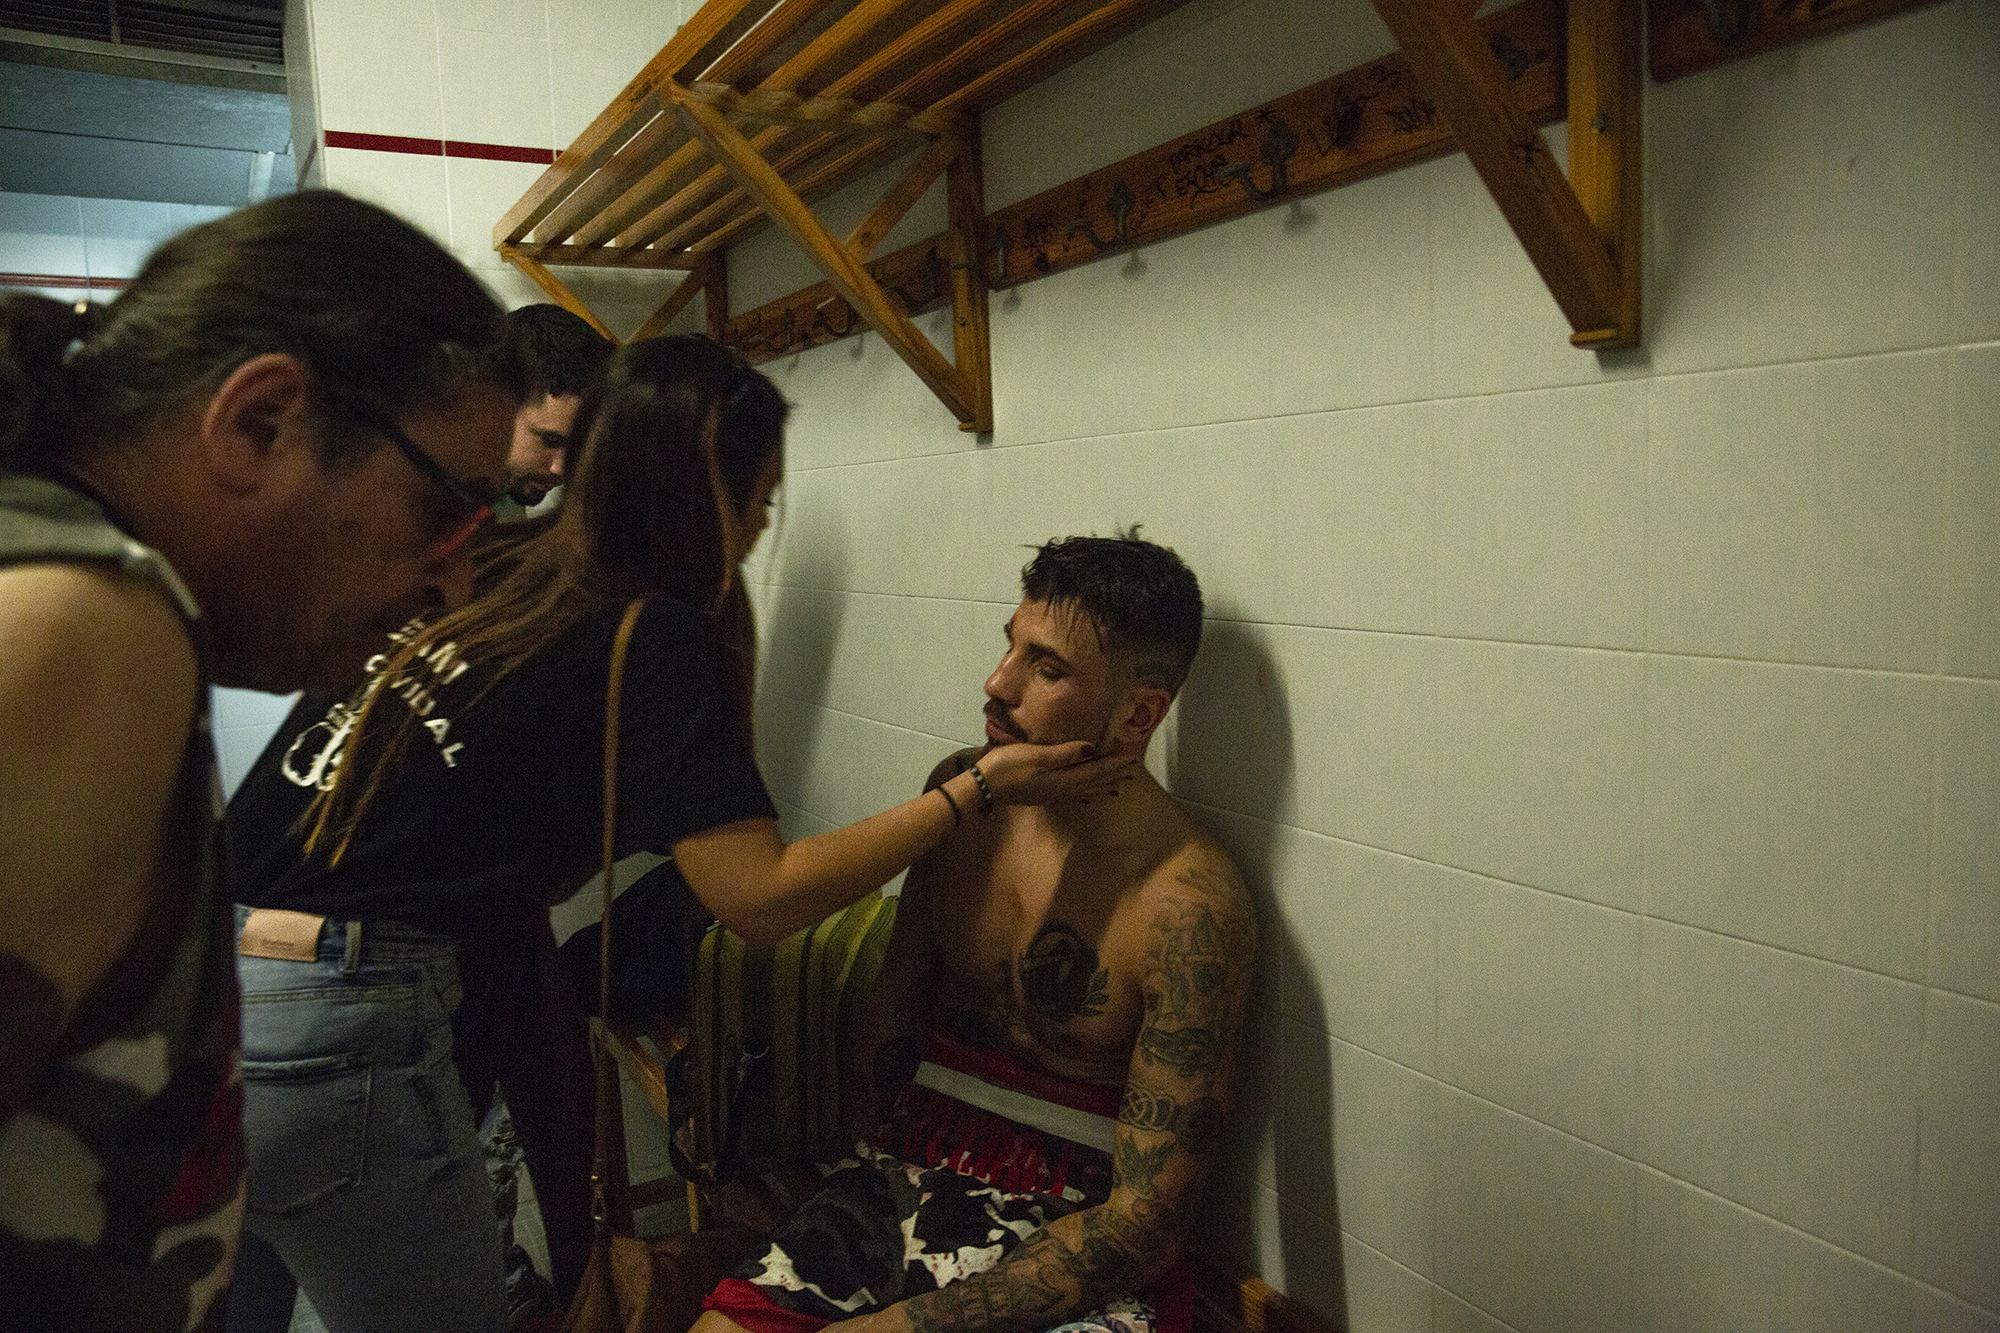 In the locker room of the winner Marc Vidal after the bout.